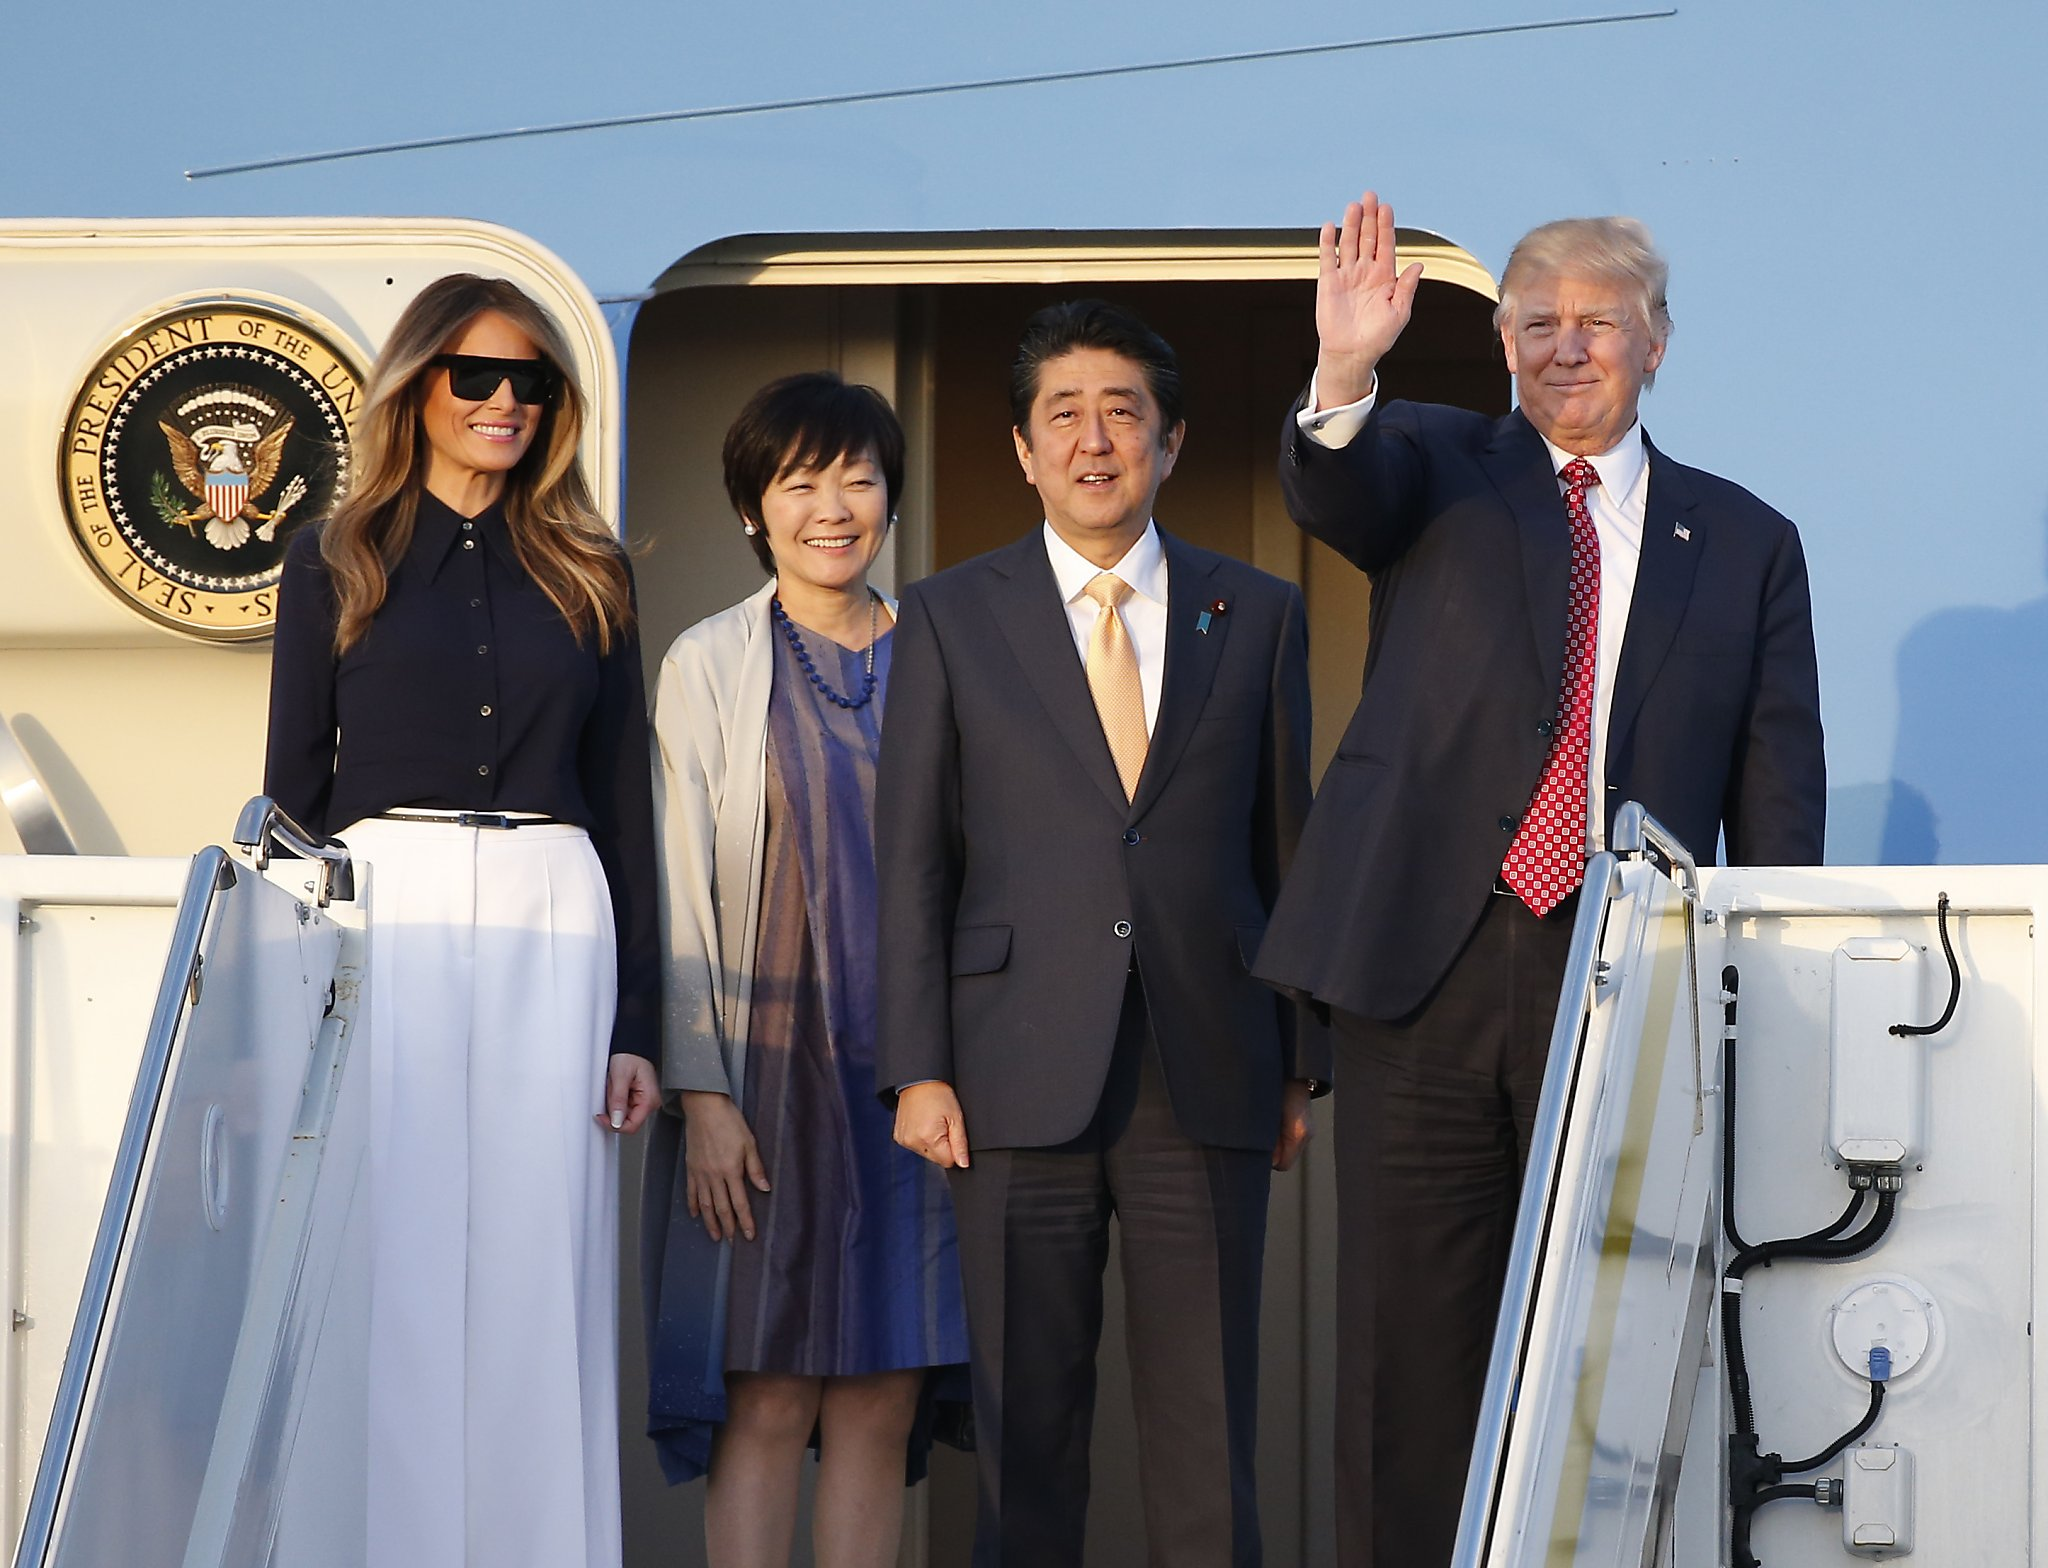 People are speculating Japan's First Lady pretended not to know English to avoid talking to Trump